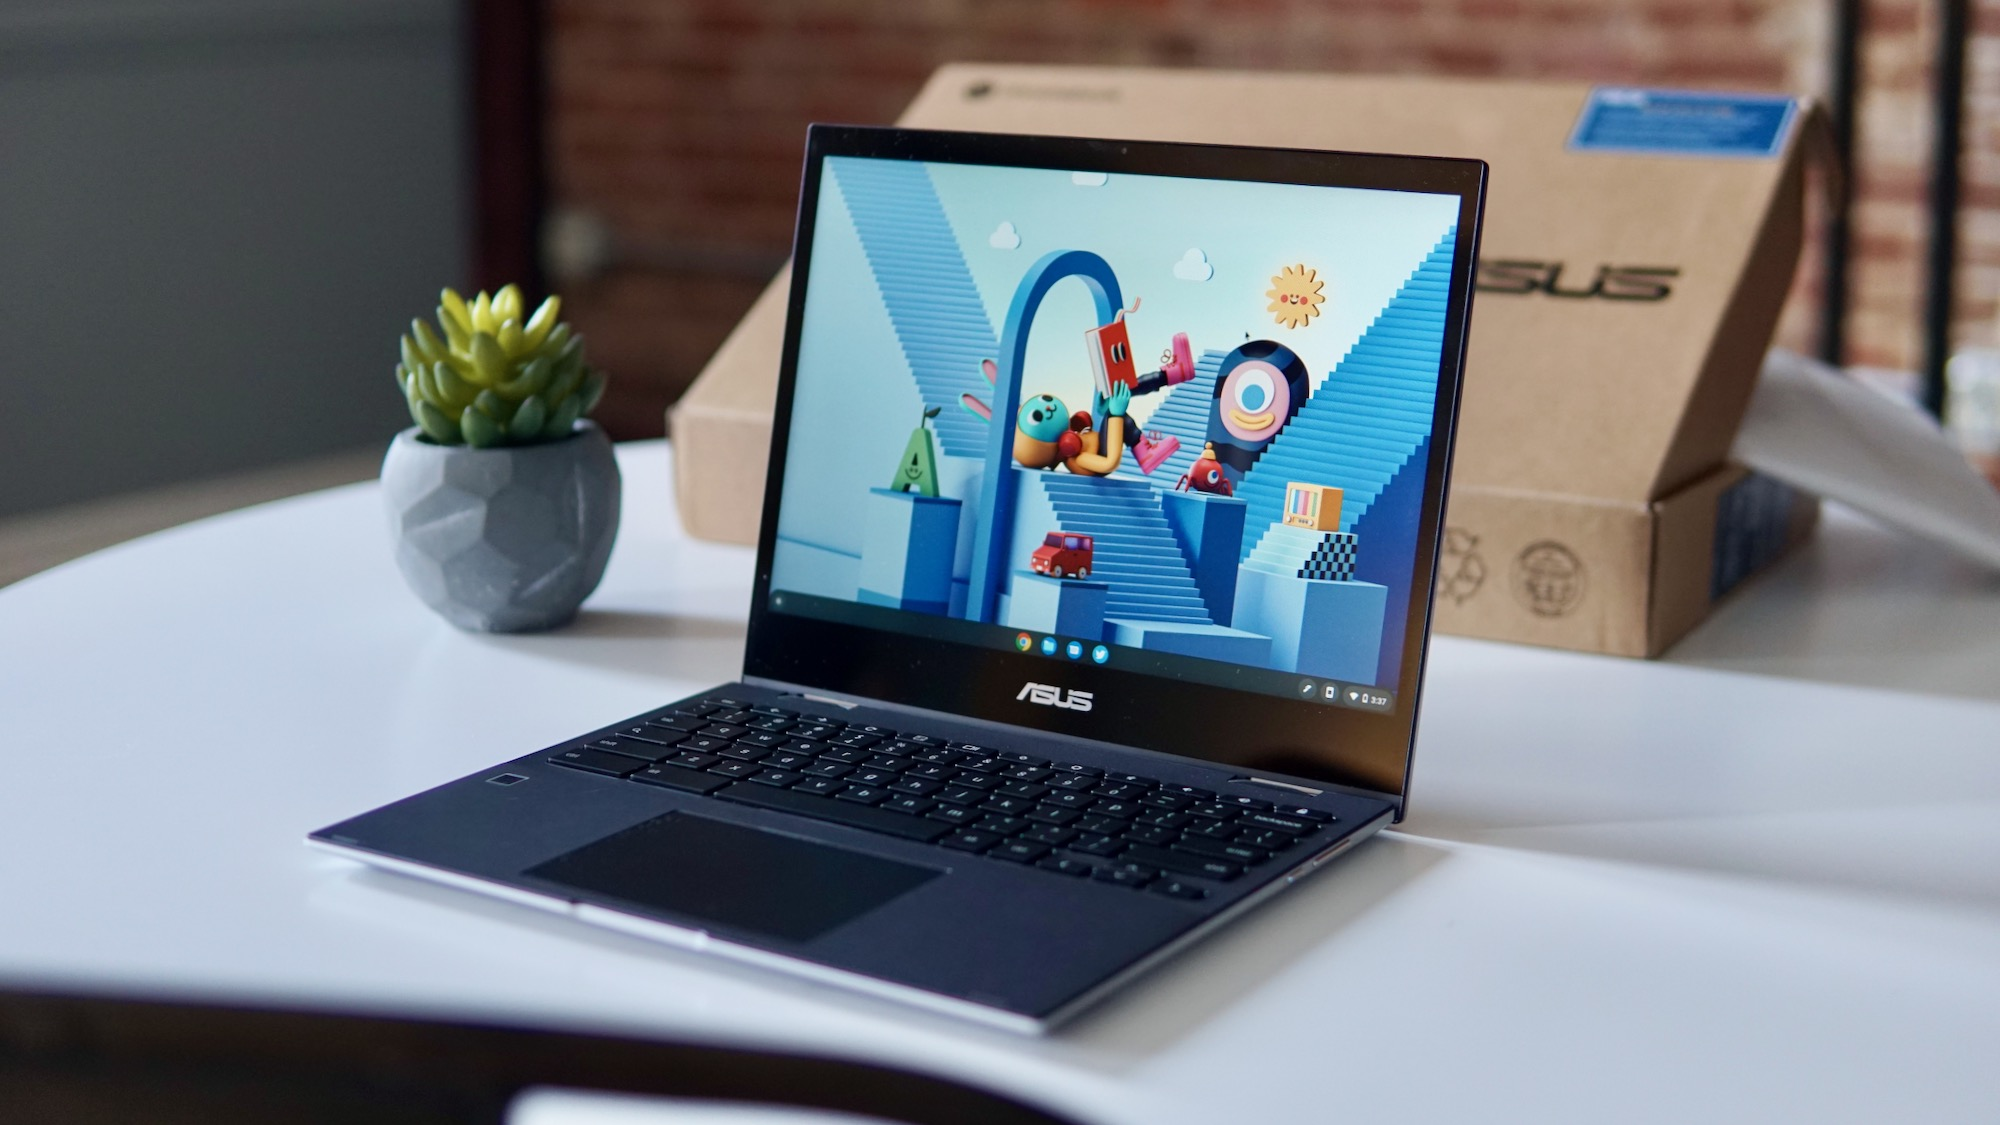 ASUS Chromebook Flip CM3 unboxing and initial impressions [VIDEO]